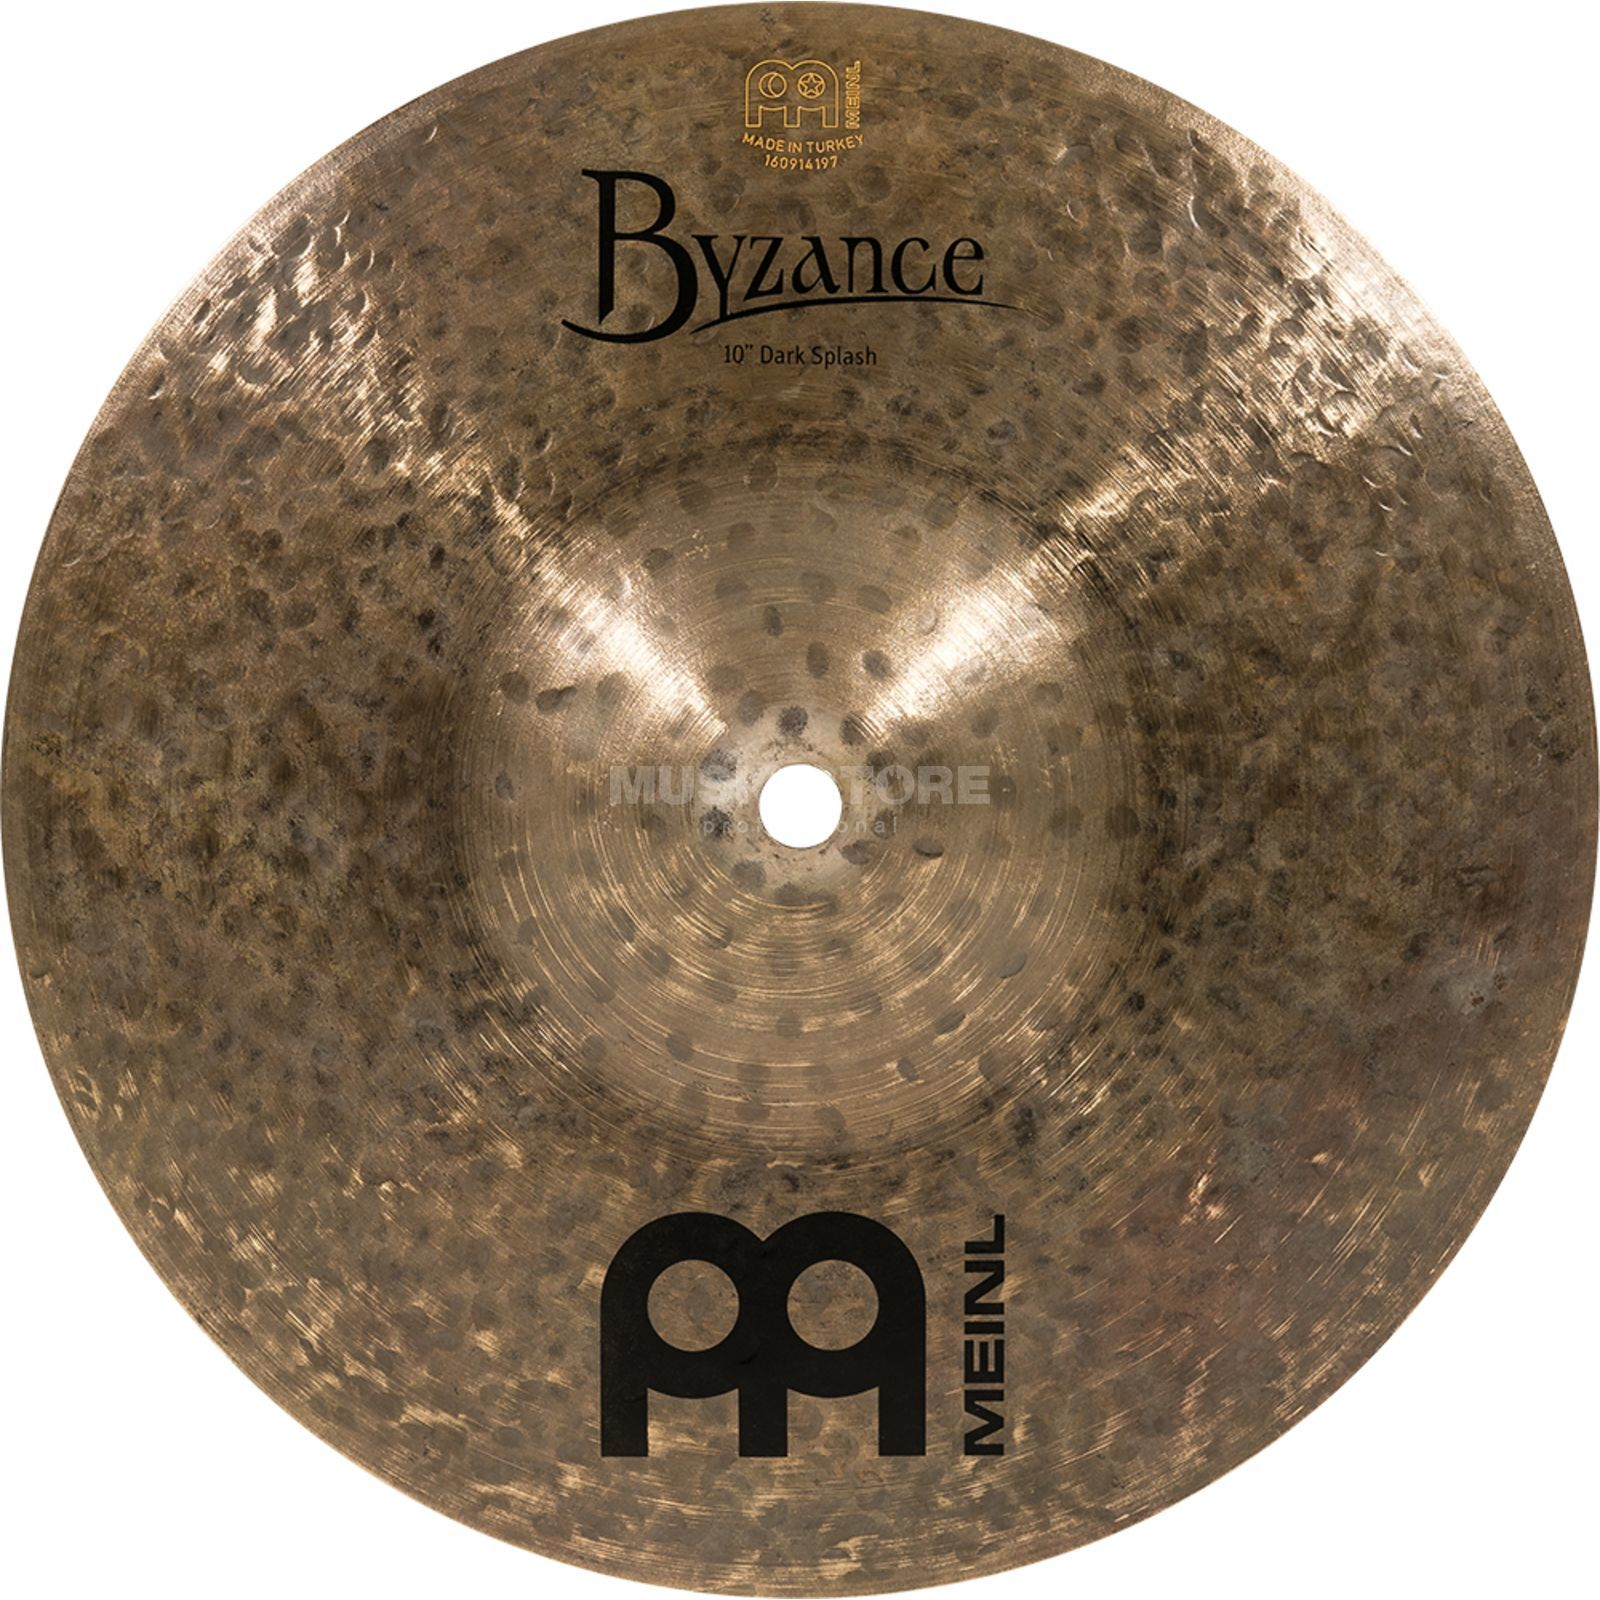 "Meinl Byzance Dark Splash 10"" B10DAS, Dark Finish Produktbillede"